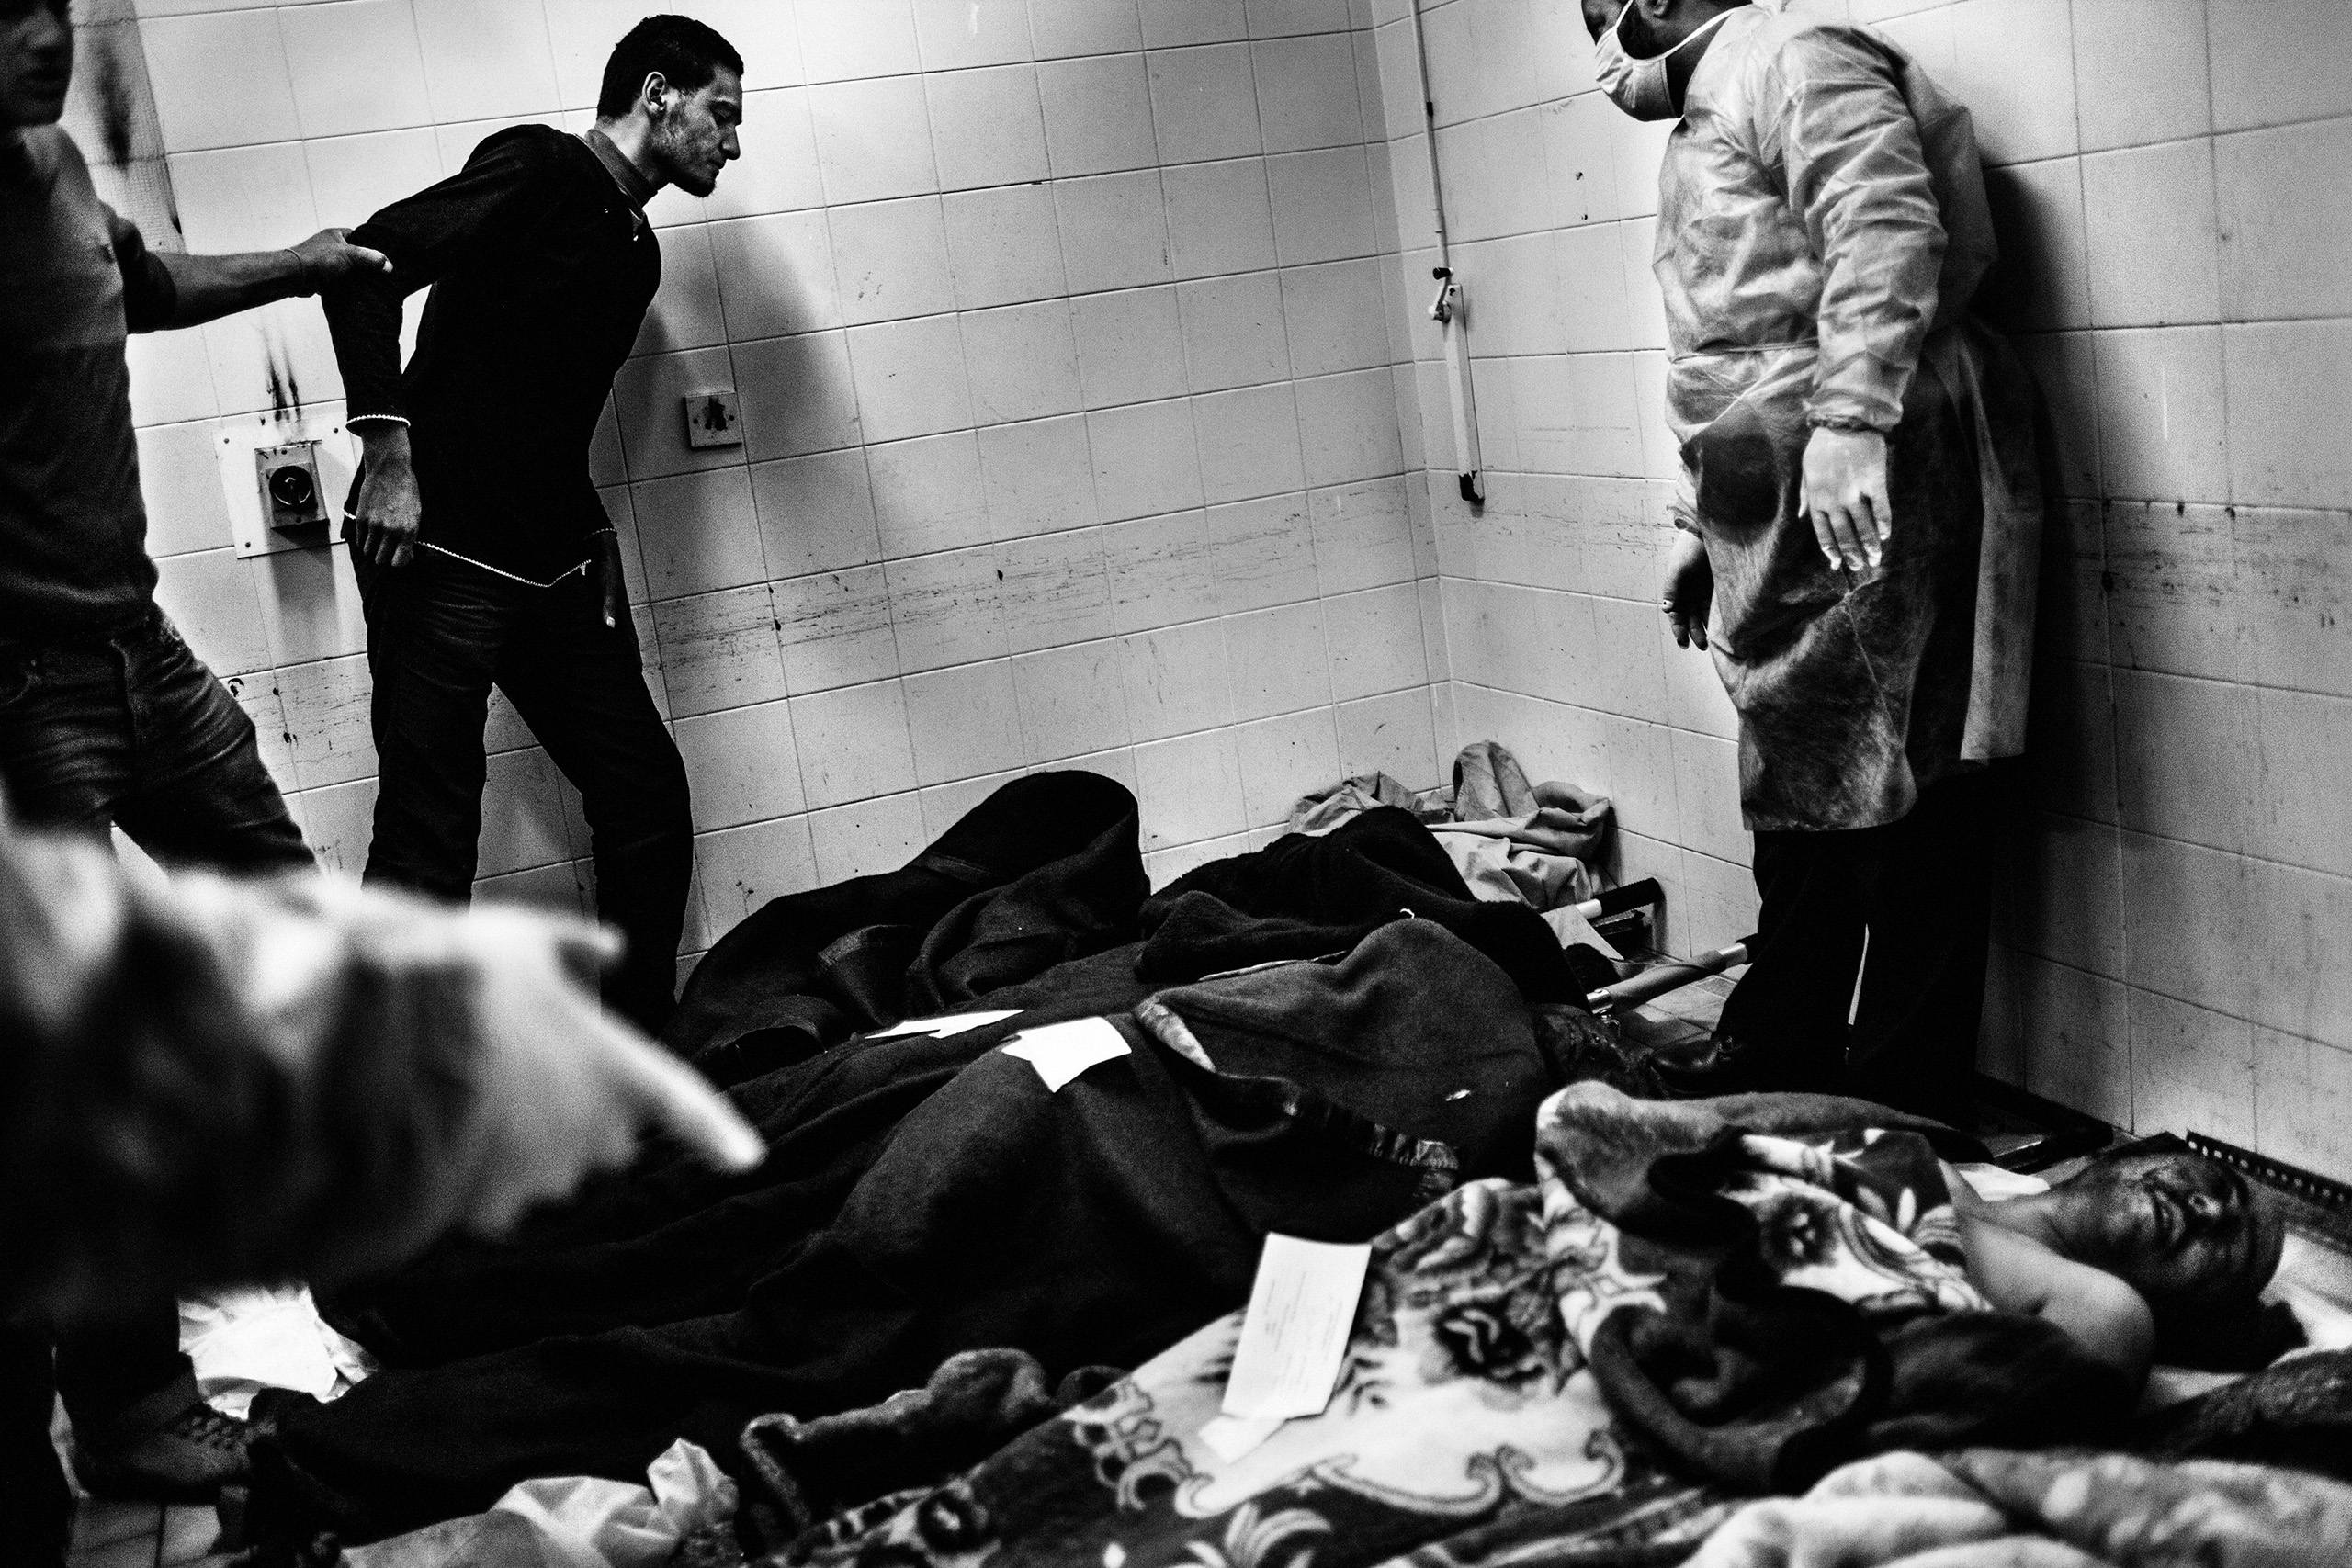 The relative of a victim approaches the body of a revolutionary fighter to make an identification. The victims were killed during the fighting against Gaddafi's forces on March 4, 2011, in  Benghazi, Libya.